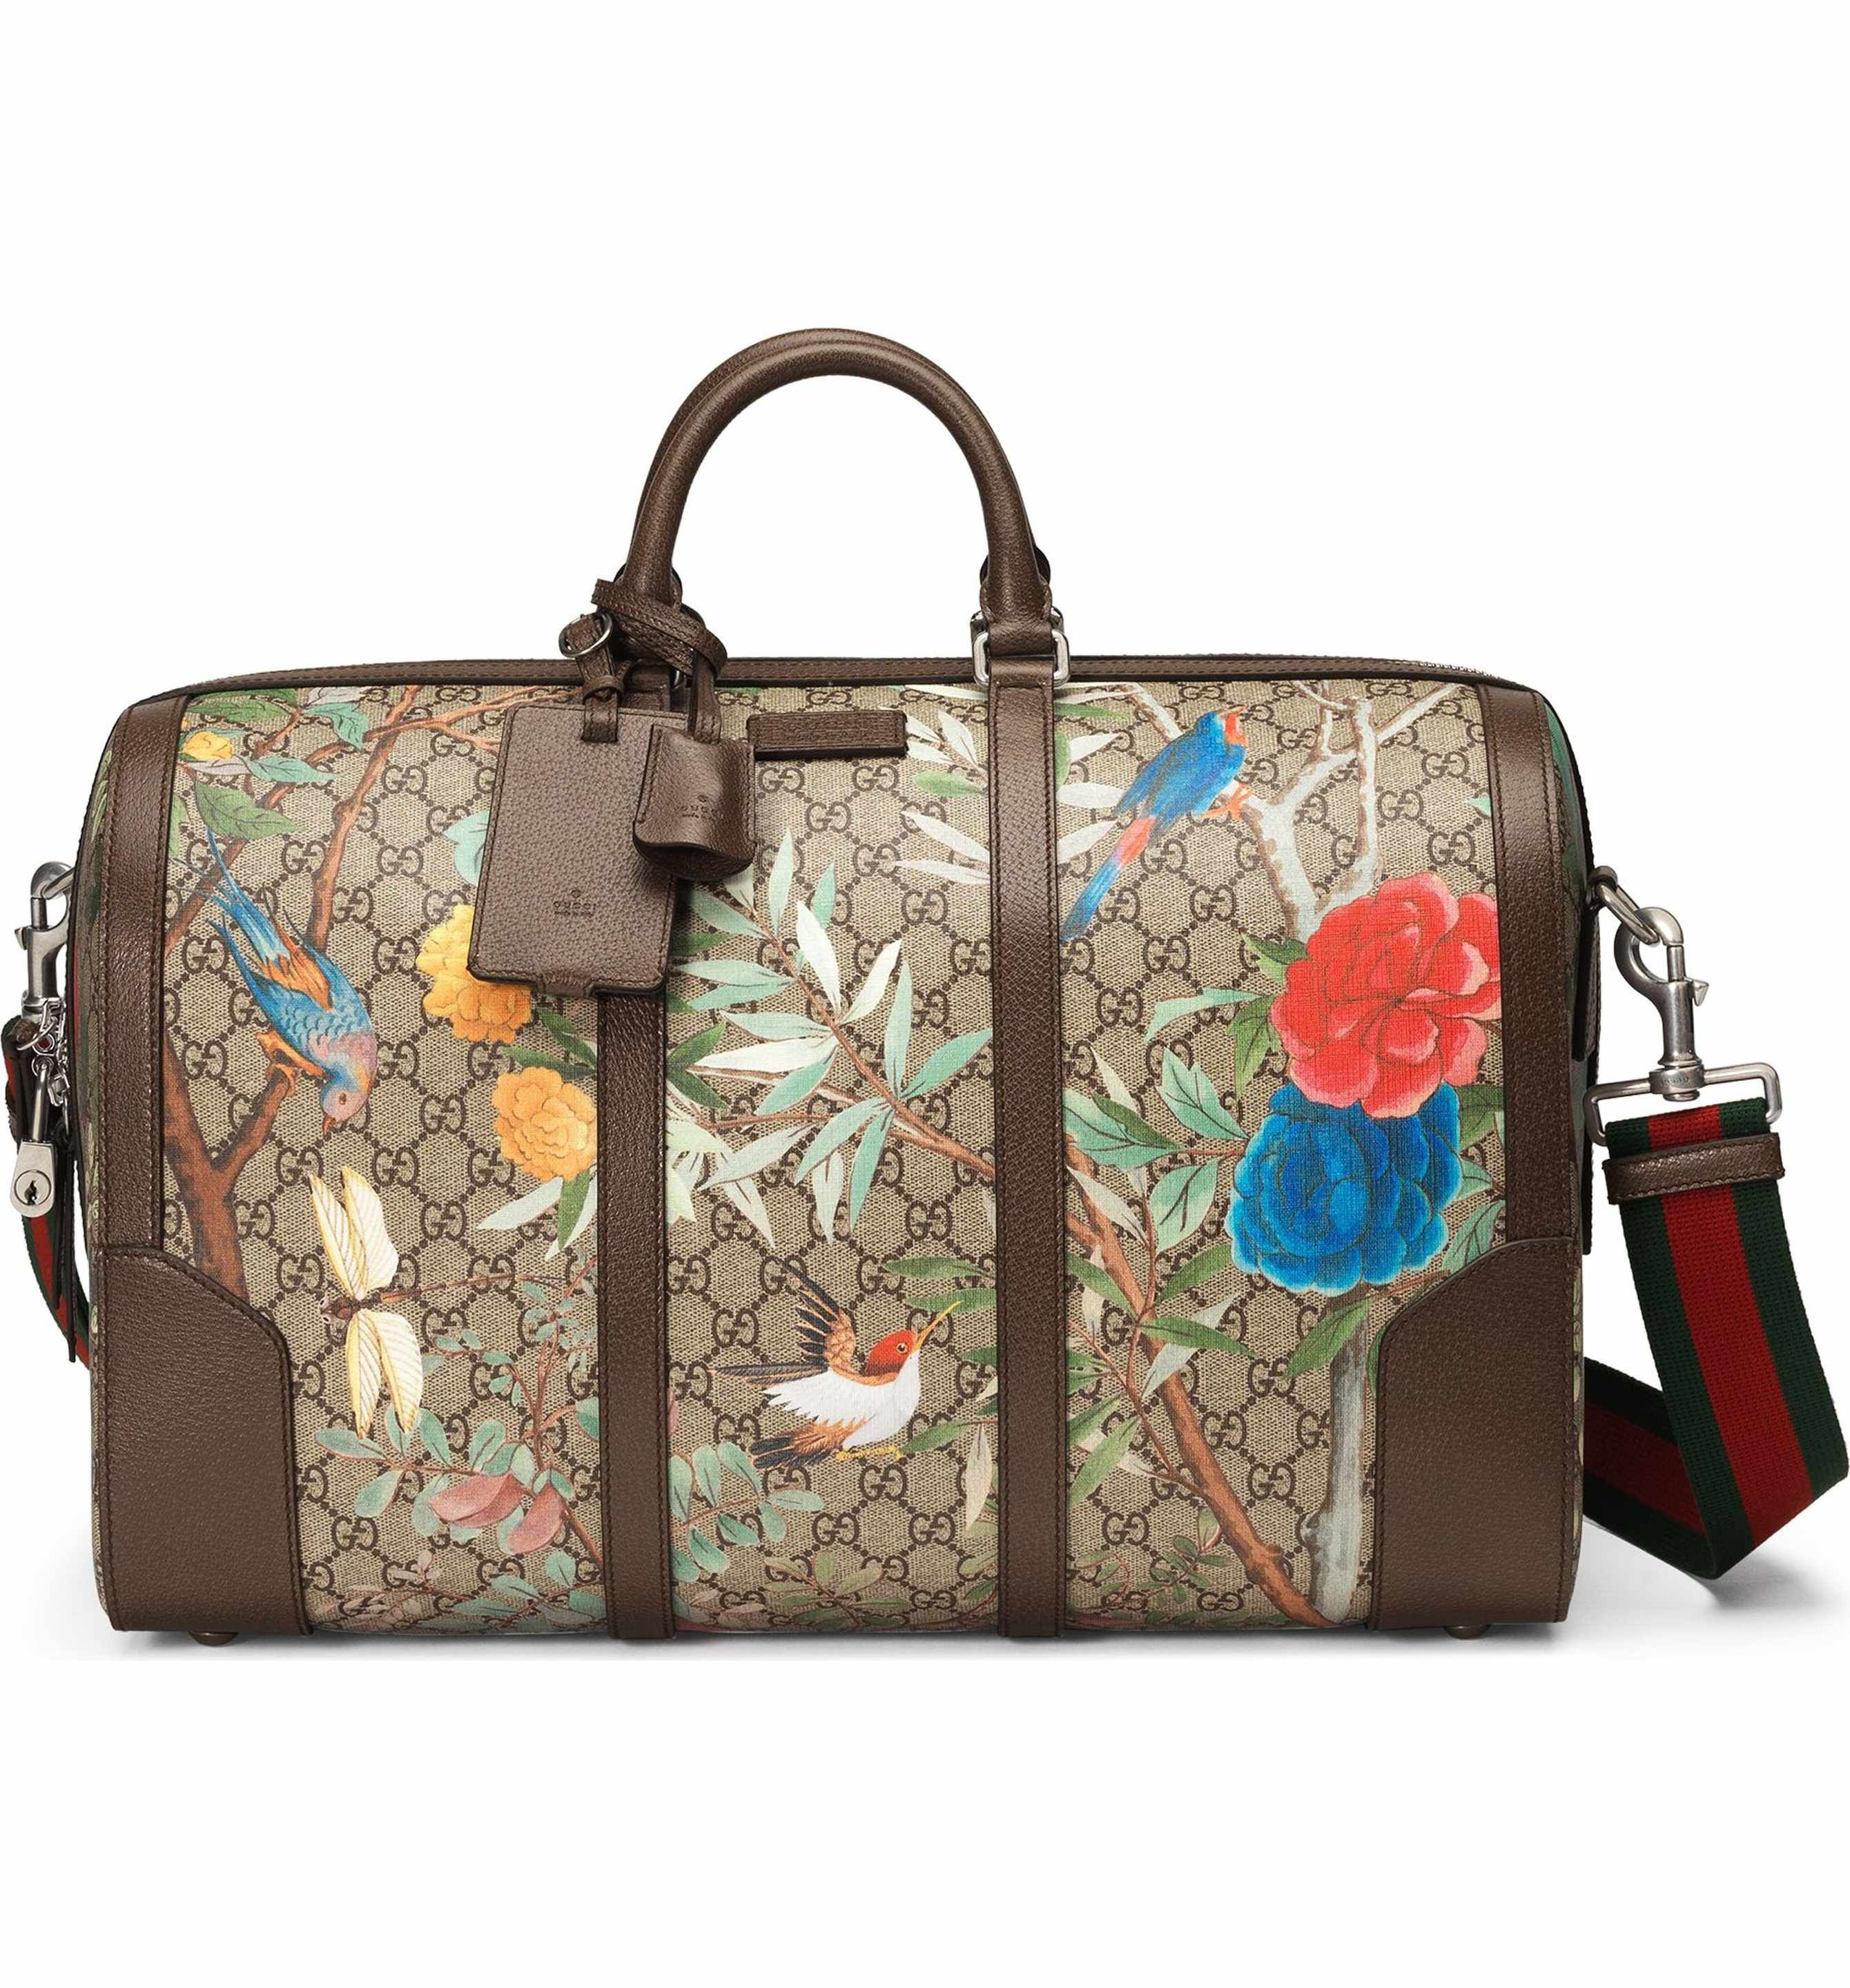 c579d731daf Main Image - Gucci Tian GG Supreme Large Canvas Duffel Bag | Bags ...